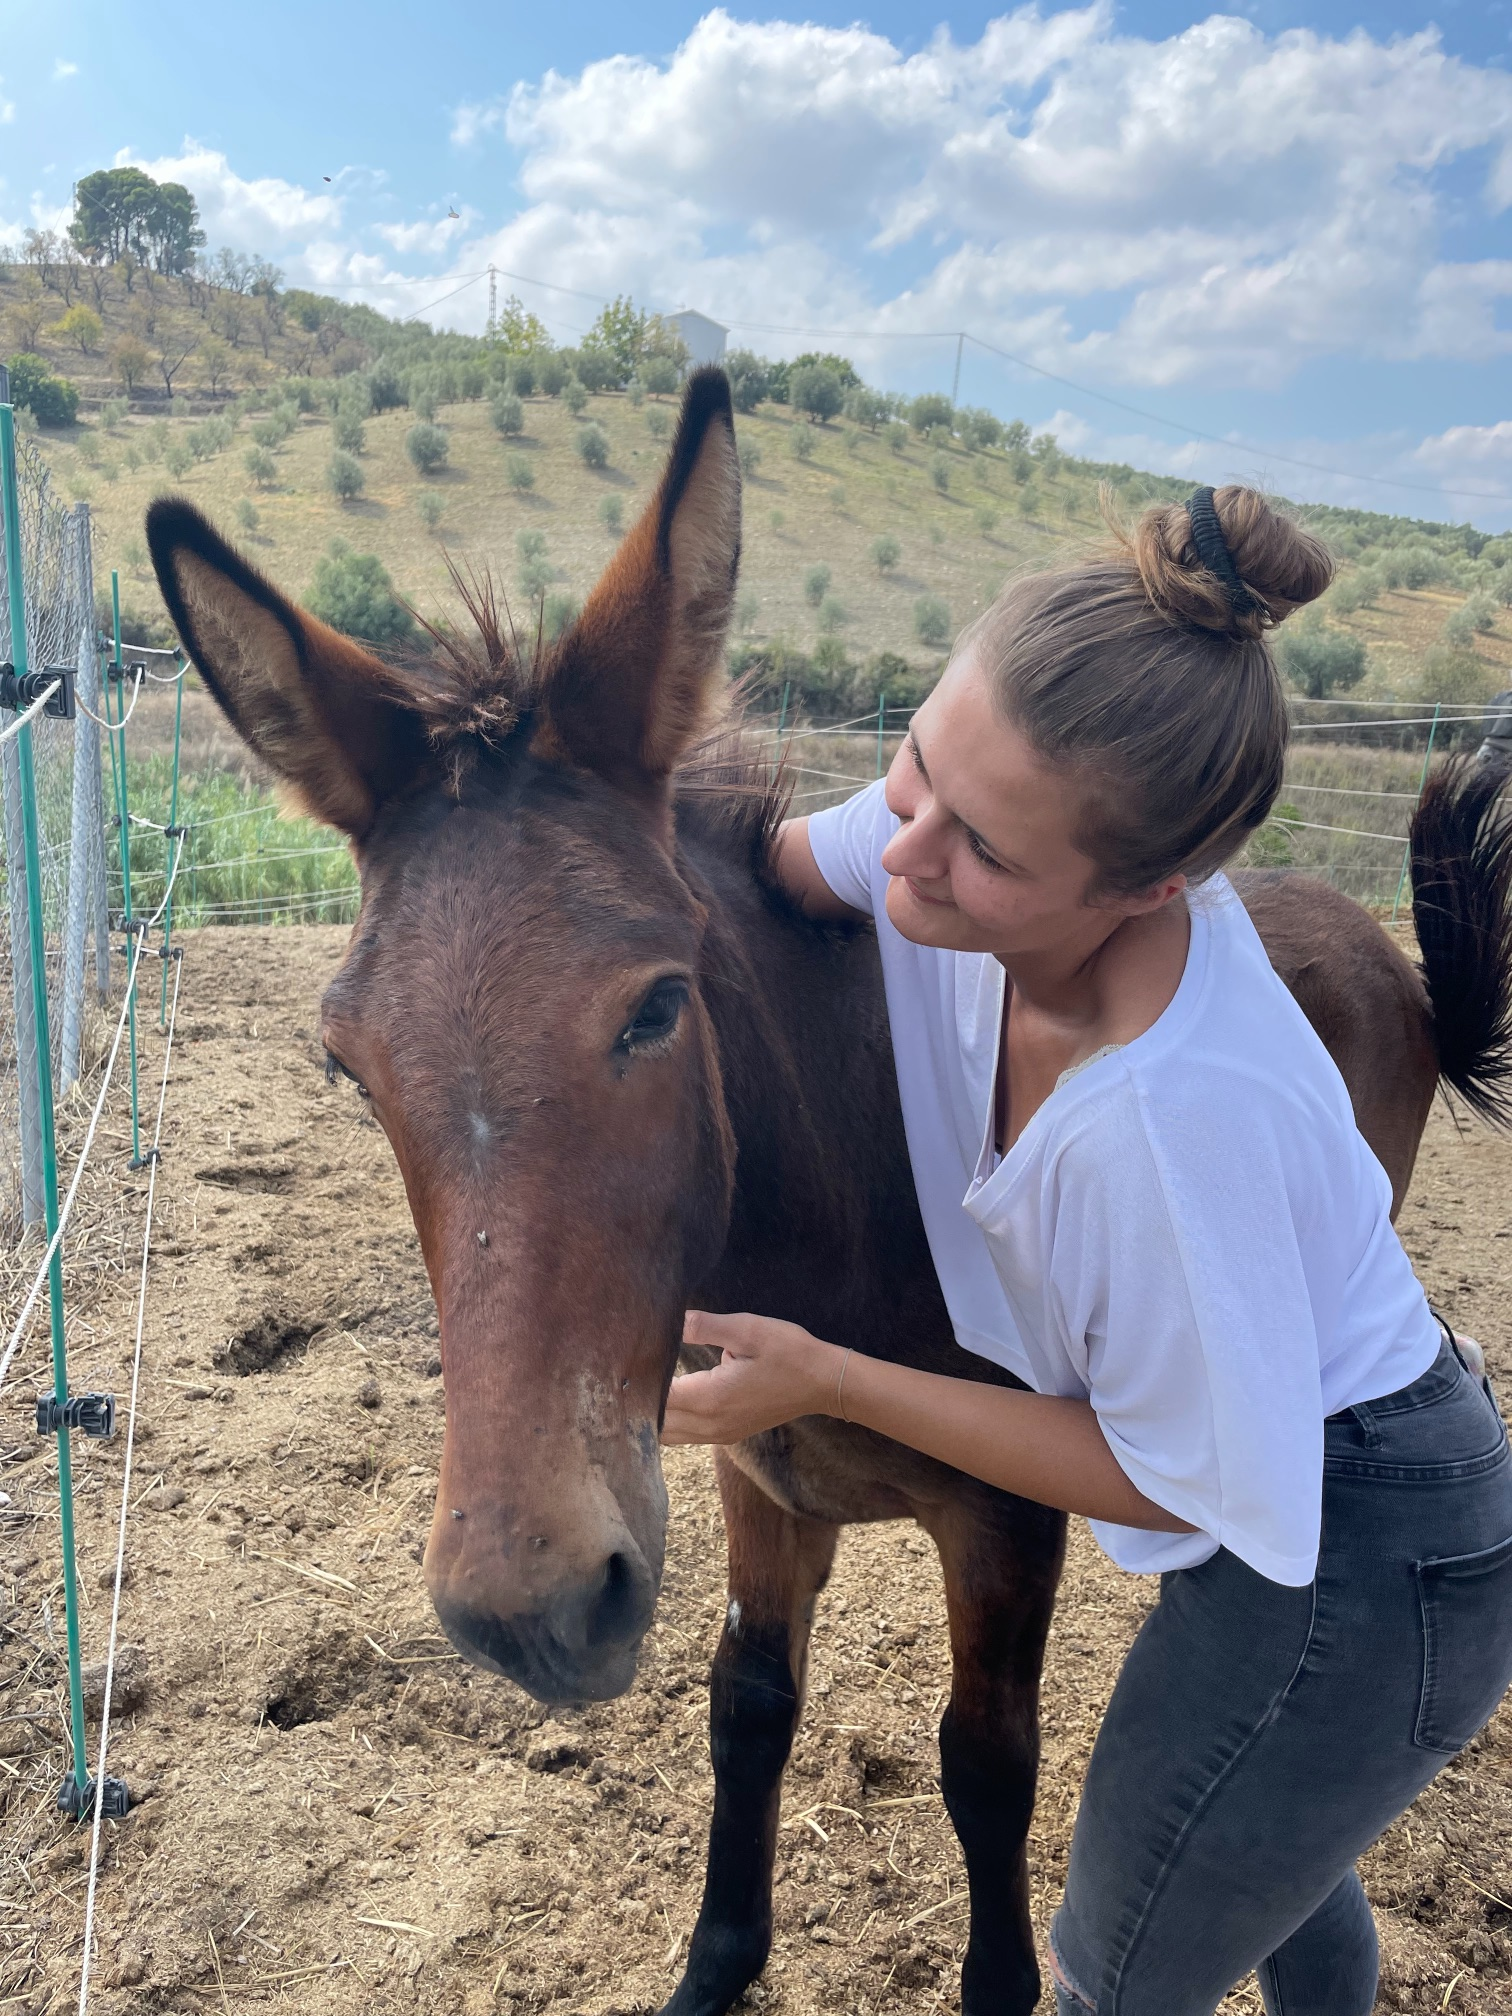 Cuddling a young mule at a horse riding destination in andalusia spain